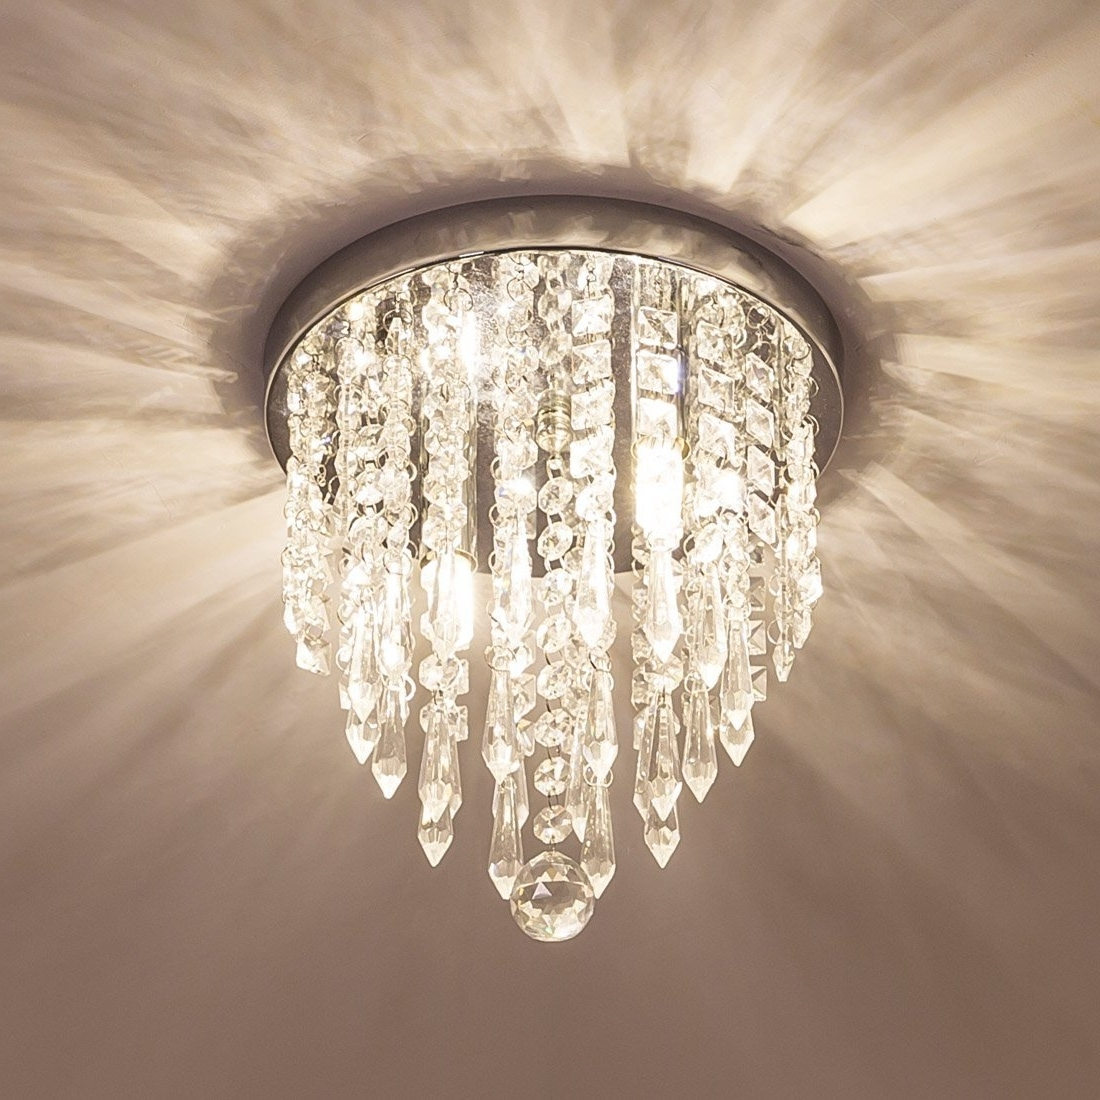 Lighting & Ceiling Fans – Ceiling Lights Within Wall Mounted Mini Chandeliers (View 4 of 15)